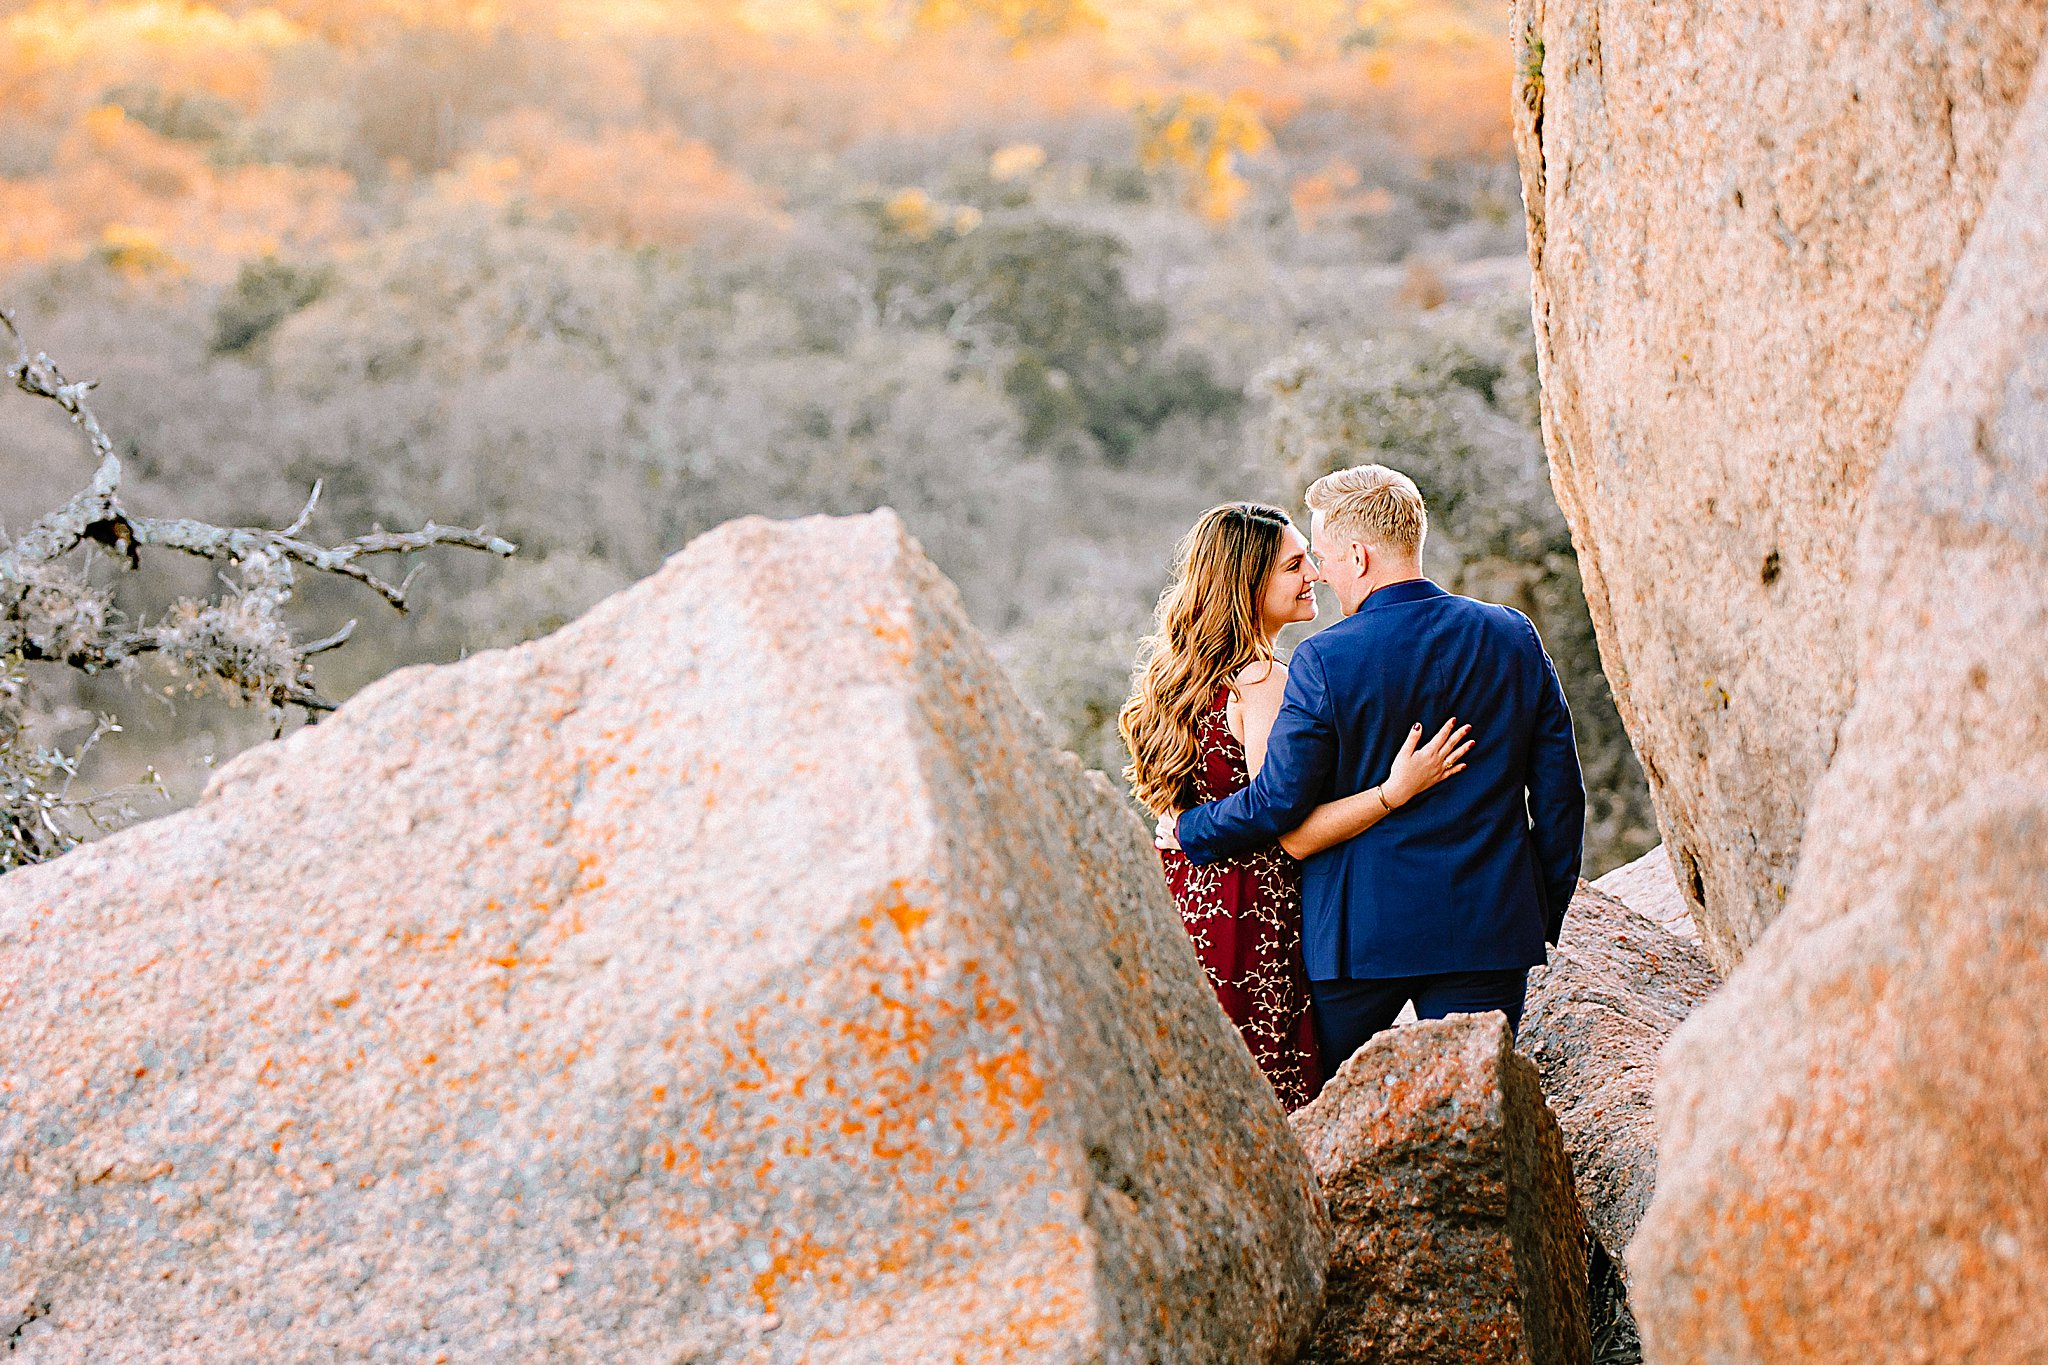 Carly-Barton-Photography-Texas-Wedding-Photographer-Enchanted-Rock-State-Park_0019.jpg